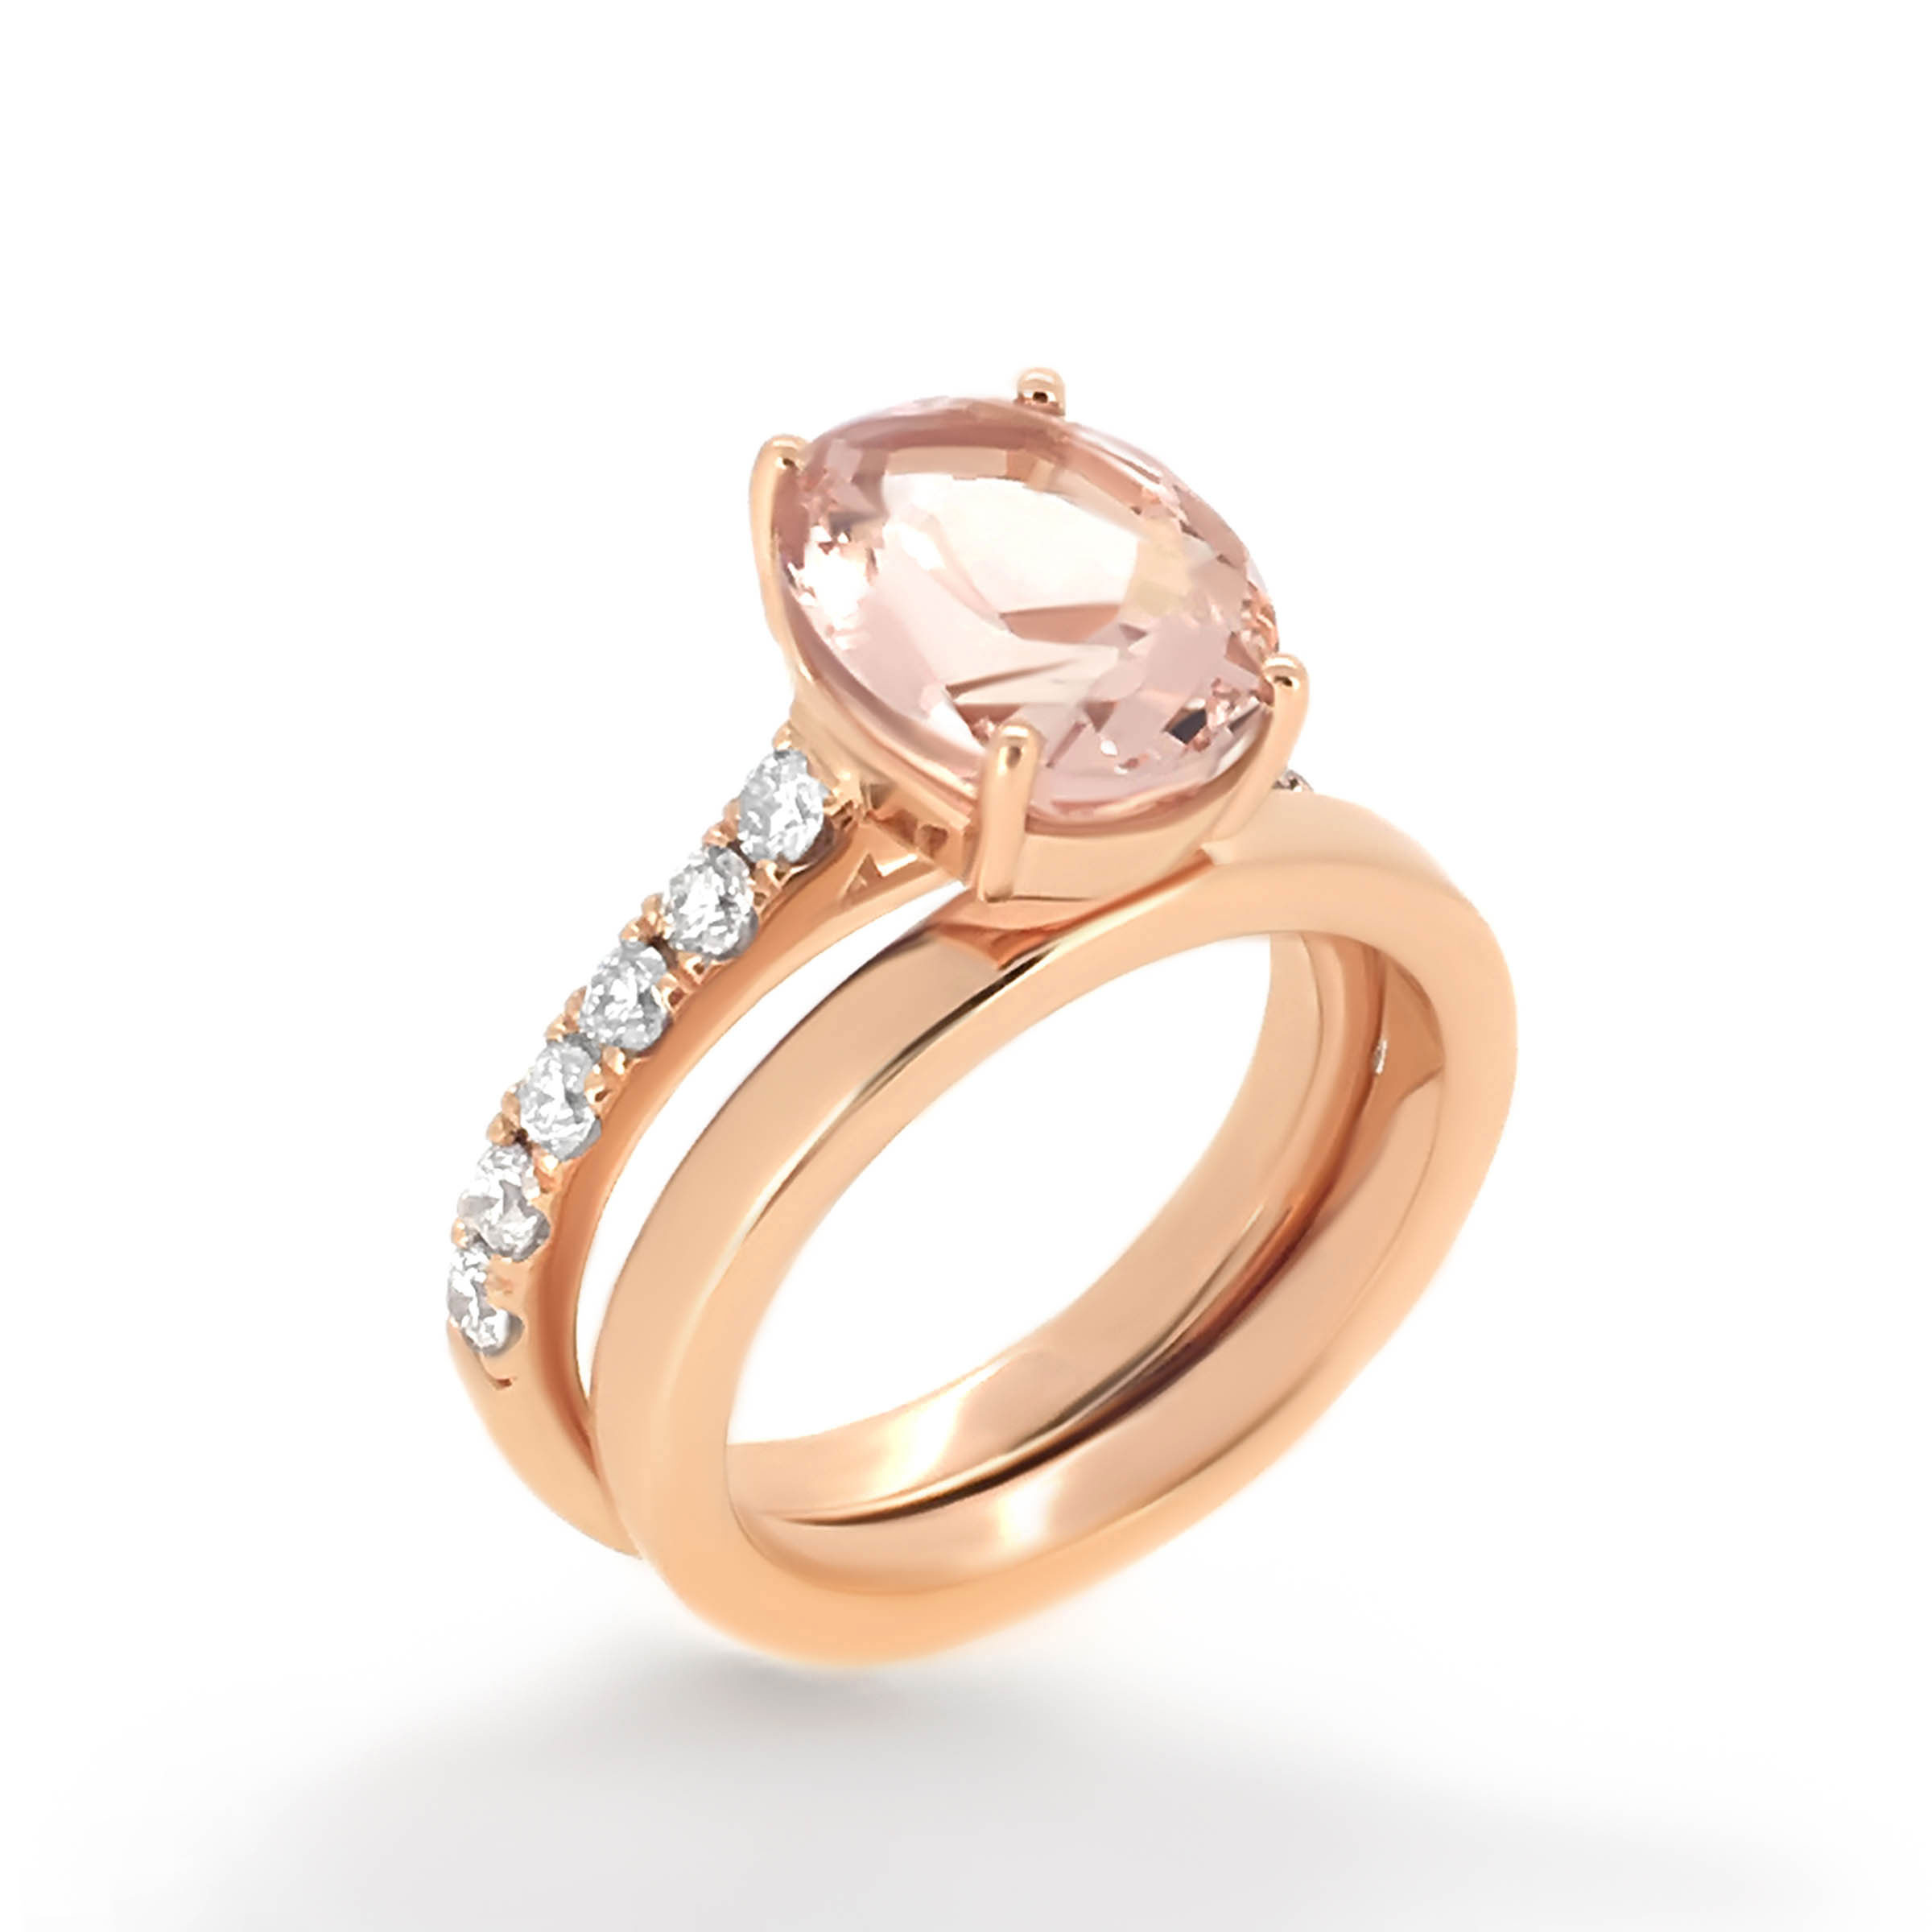 set band morganite ring s everything diamond my wedding a it about and engagement rose etsy from rings love topic gold